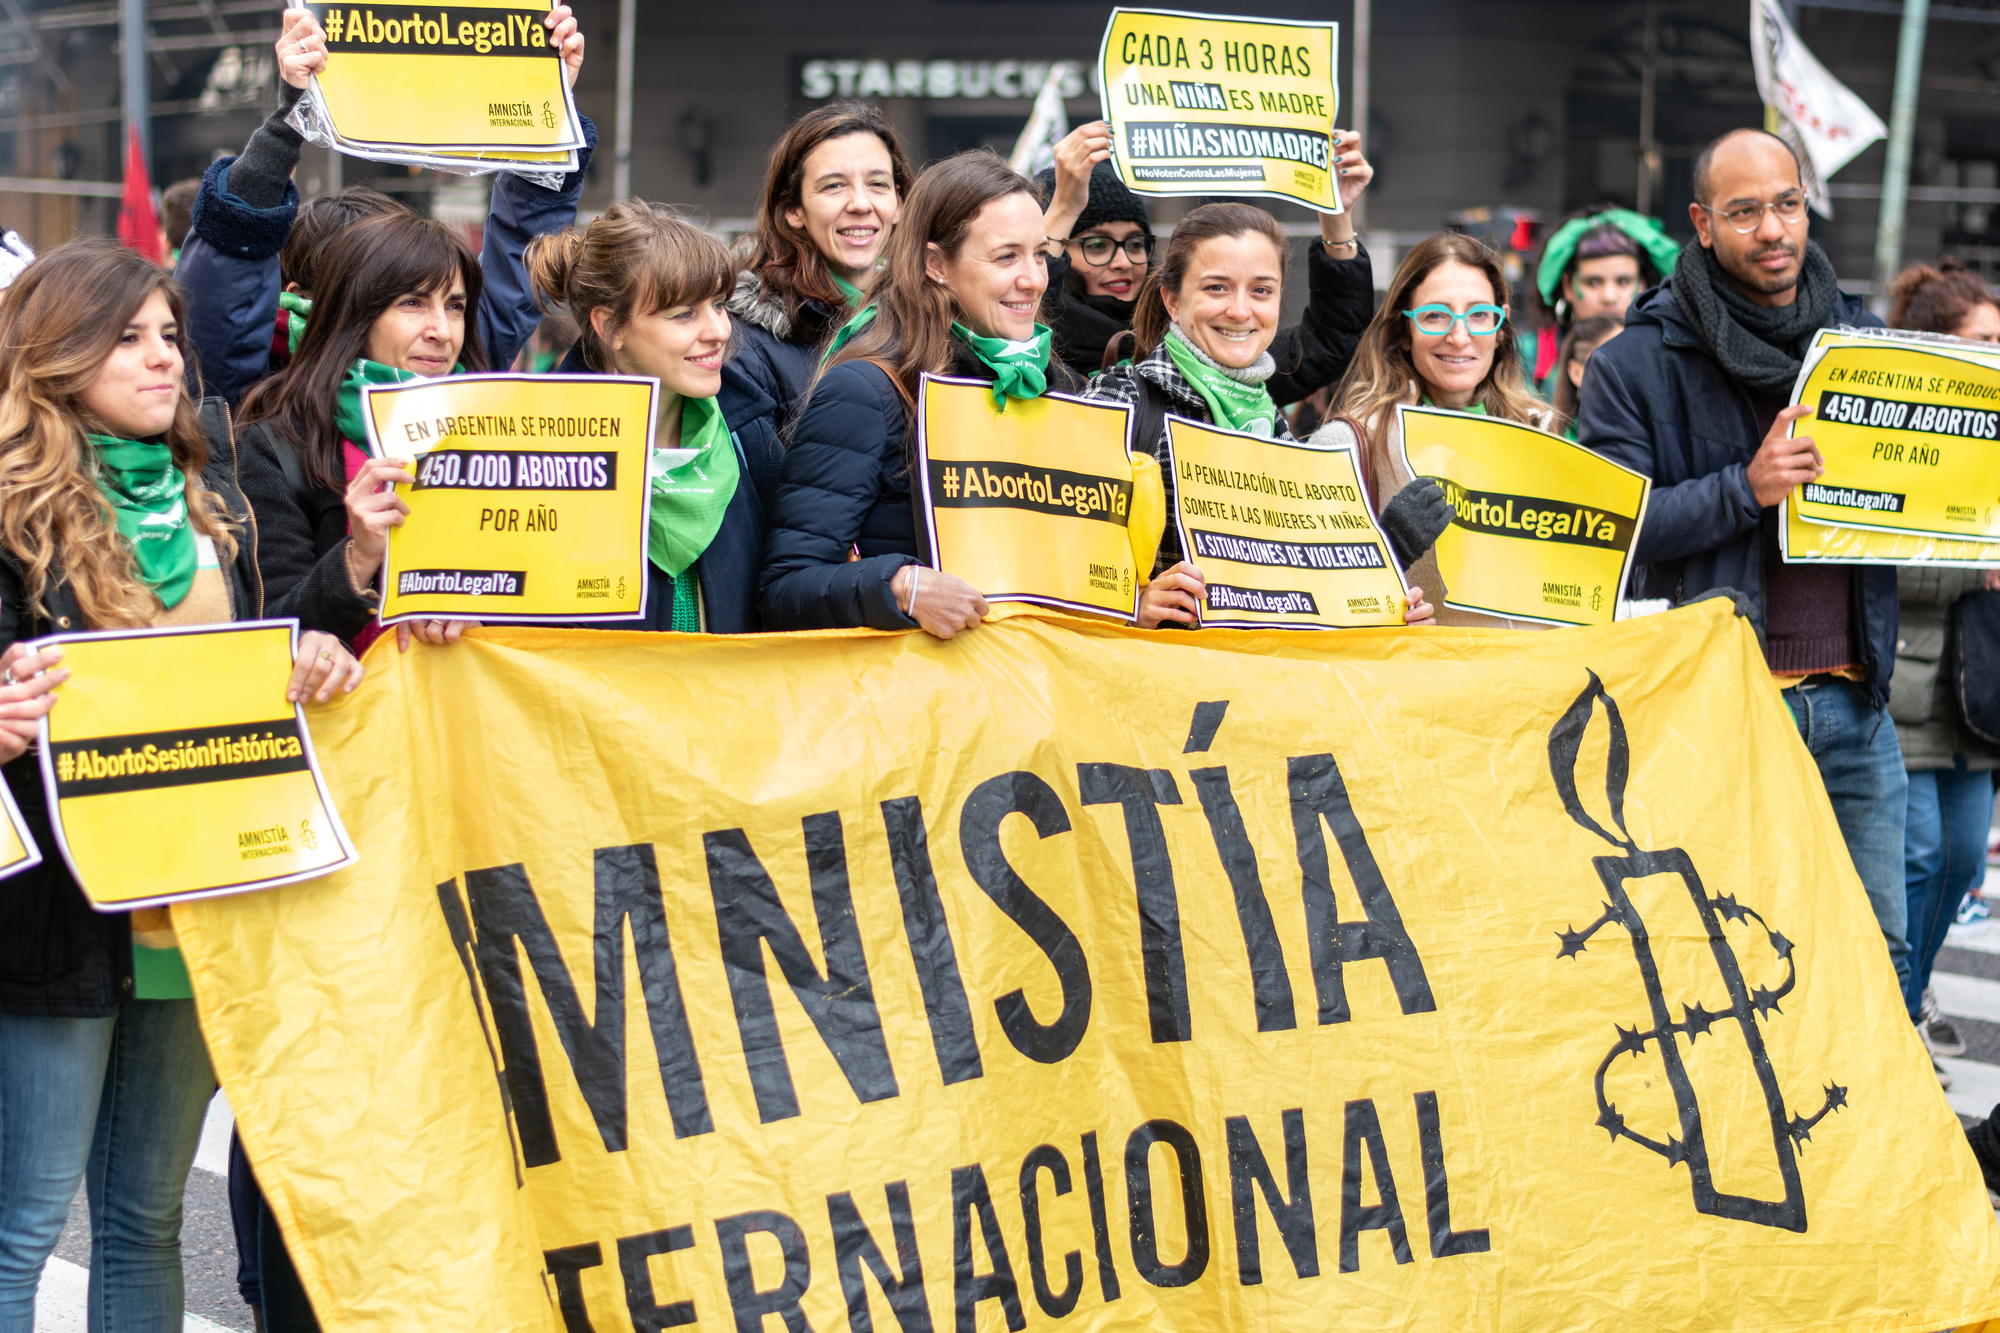 Argentina's abortion vote was a stepping stone, not a setback